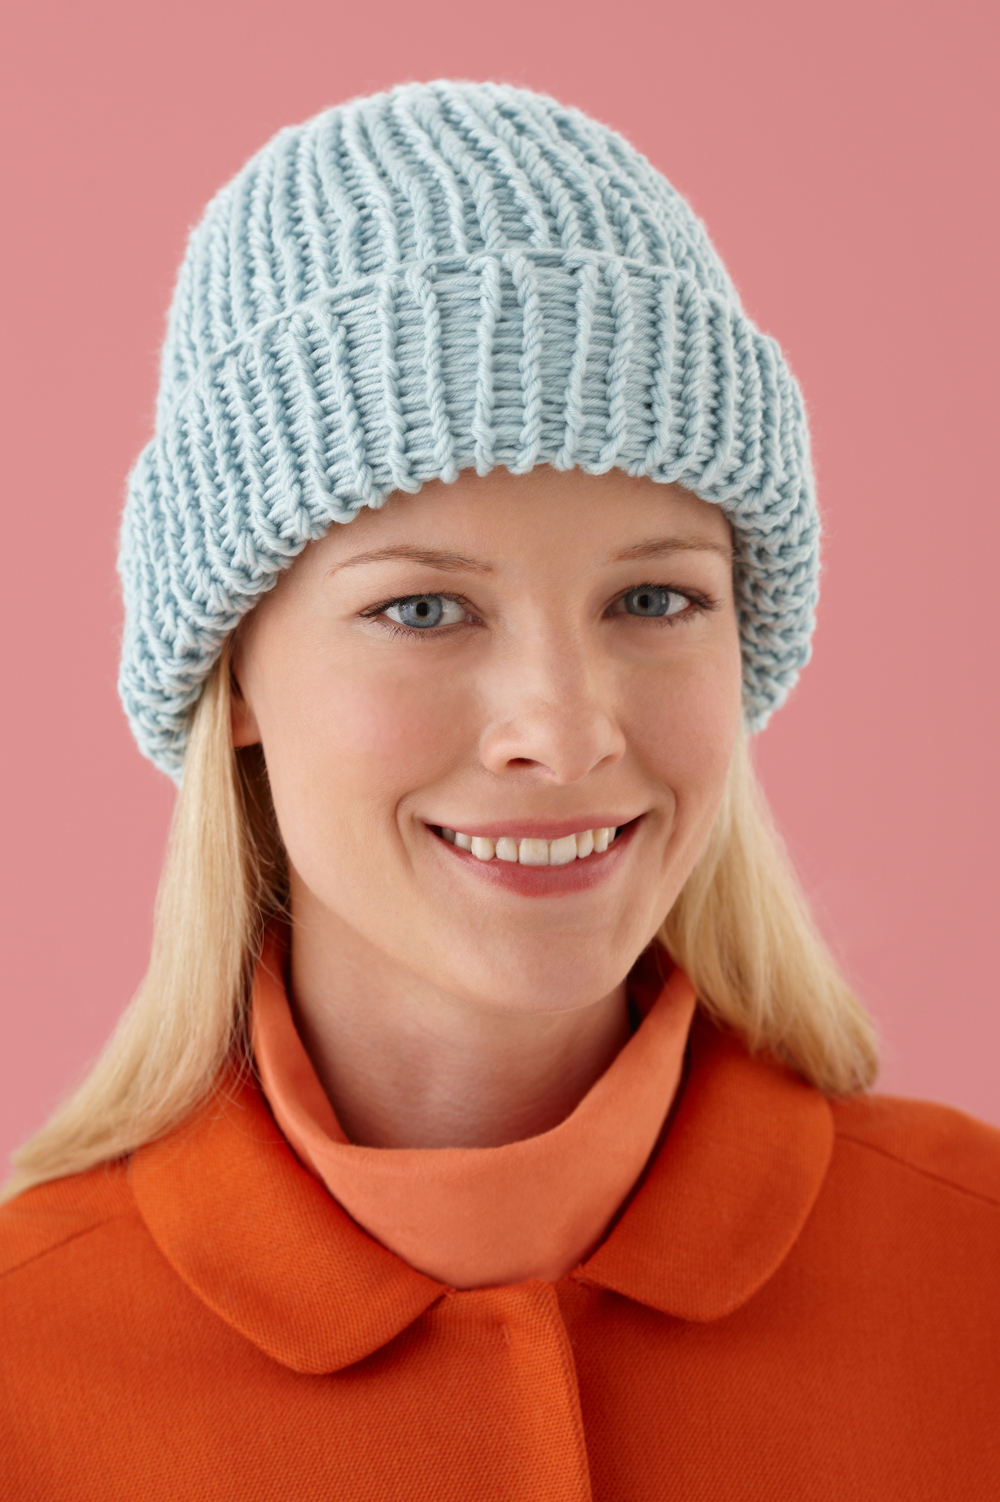 Loom Knit Hat Patterns Free 13 Best Photos Of Mens Loom Knit Hat Patterns Free Free Round